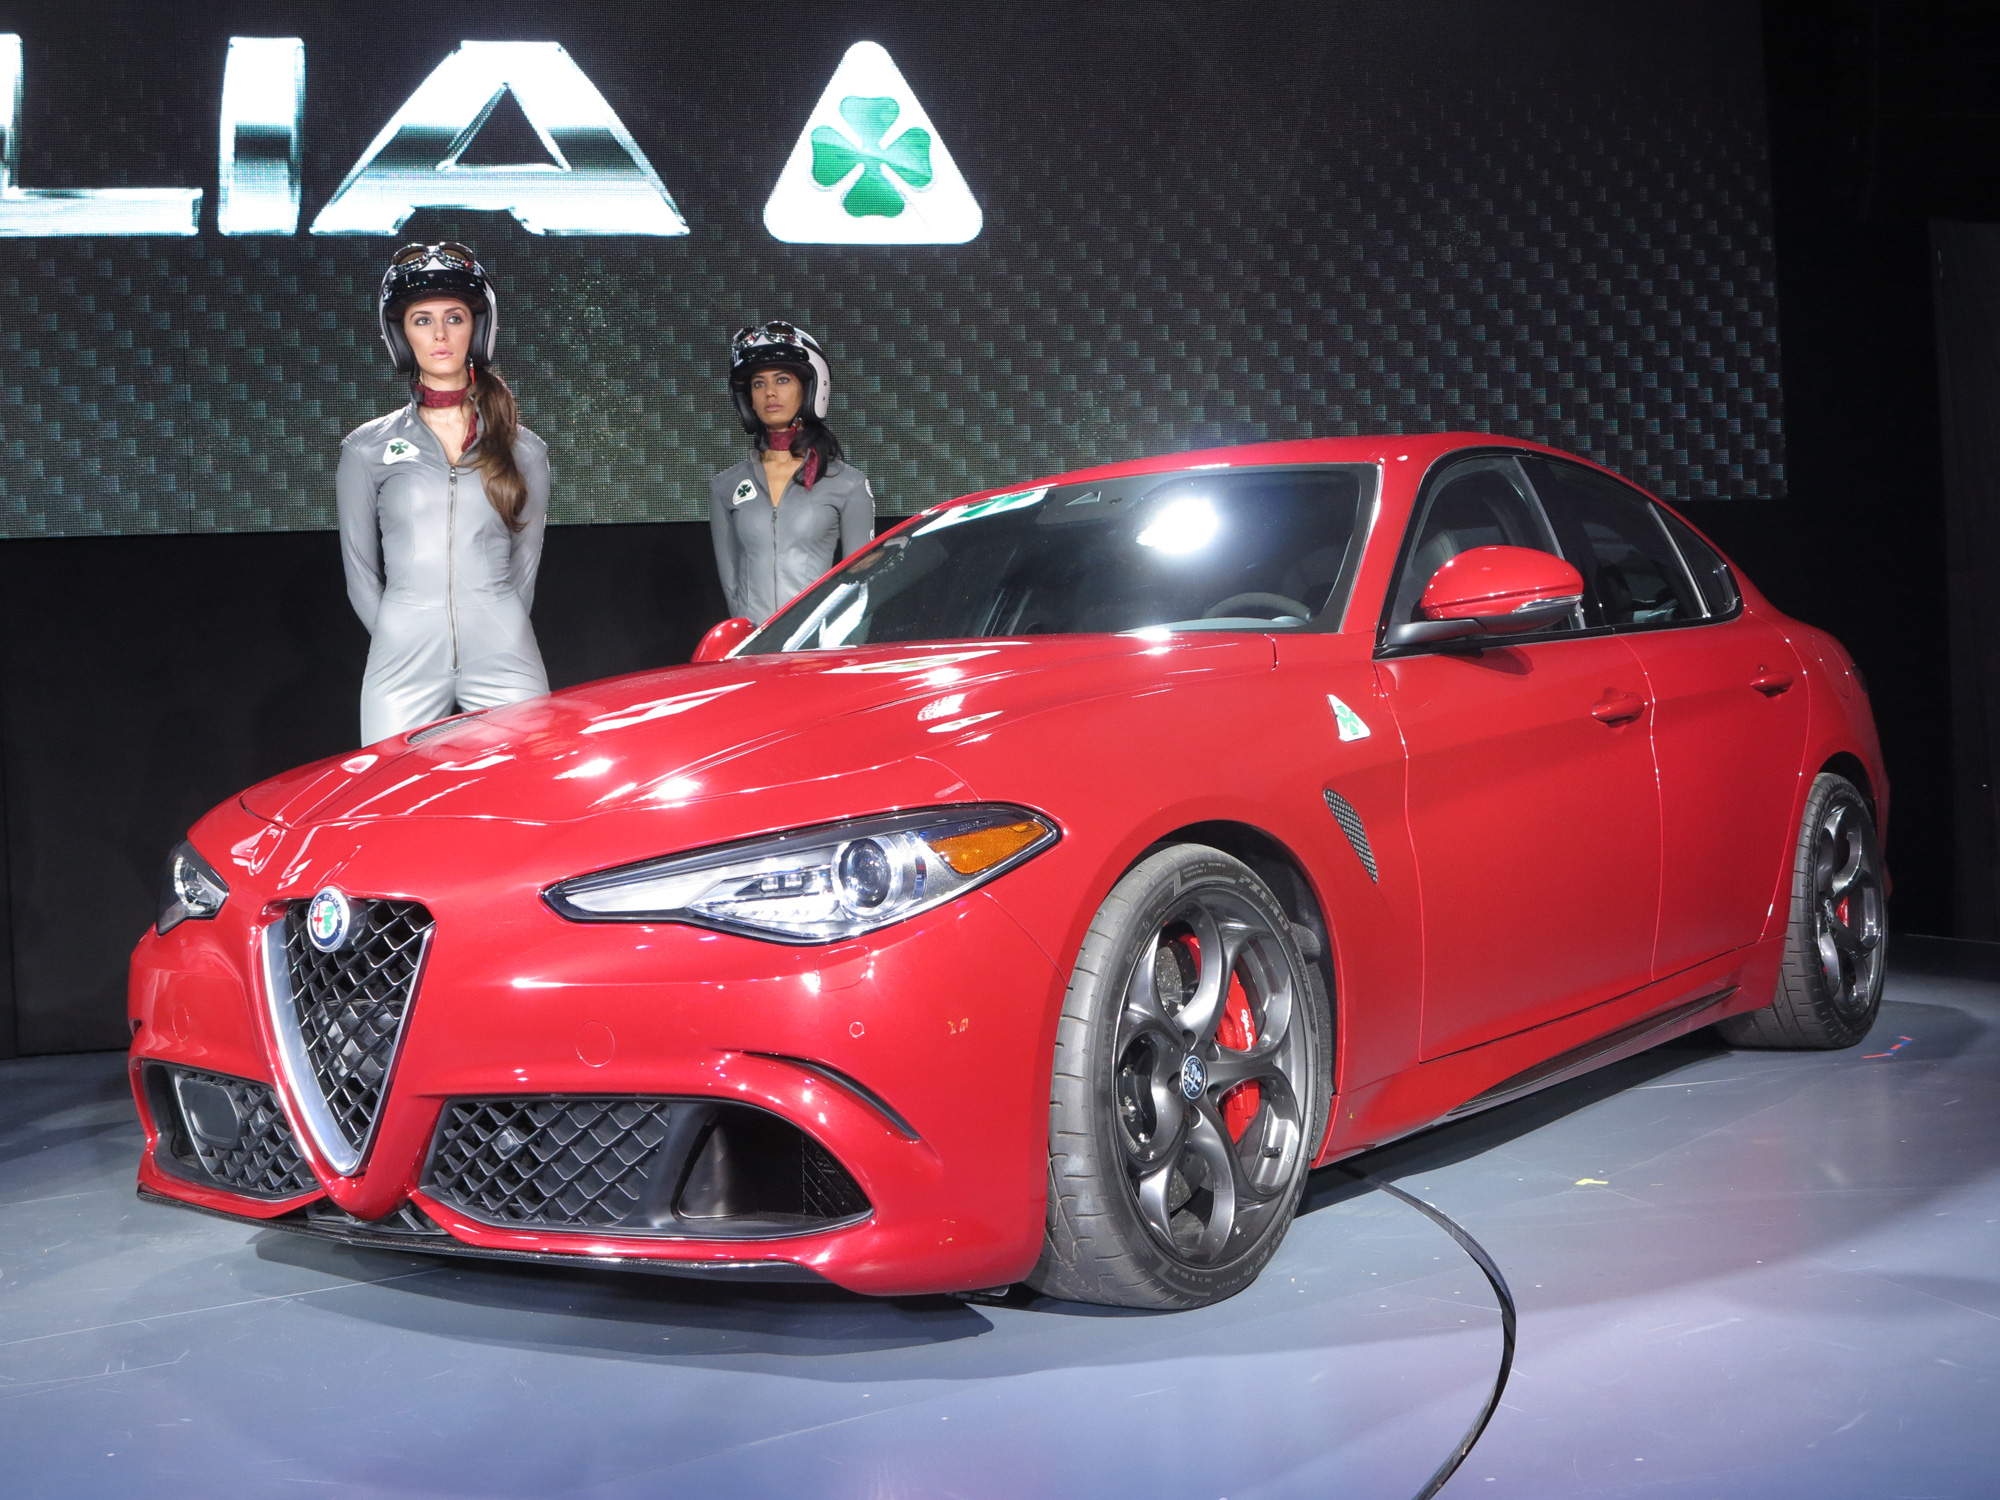 Alfa Romeo Giulia Pricing To Start In The Range AutoGuide - Alfa romeo price range